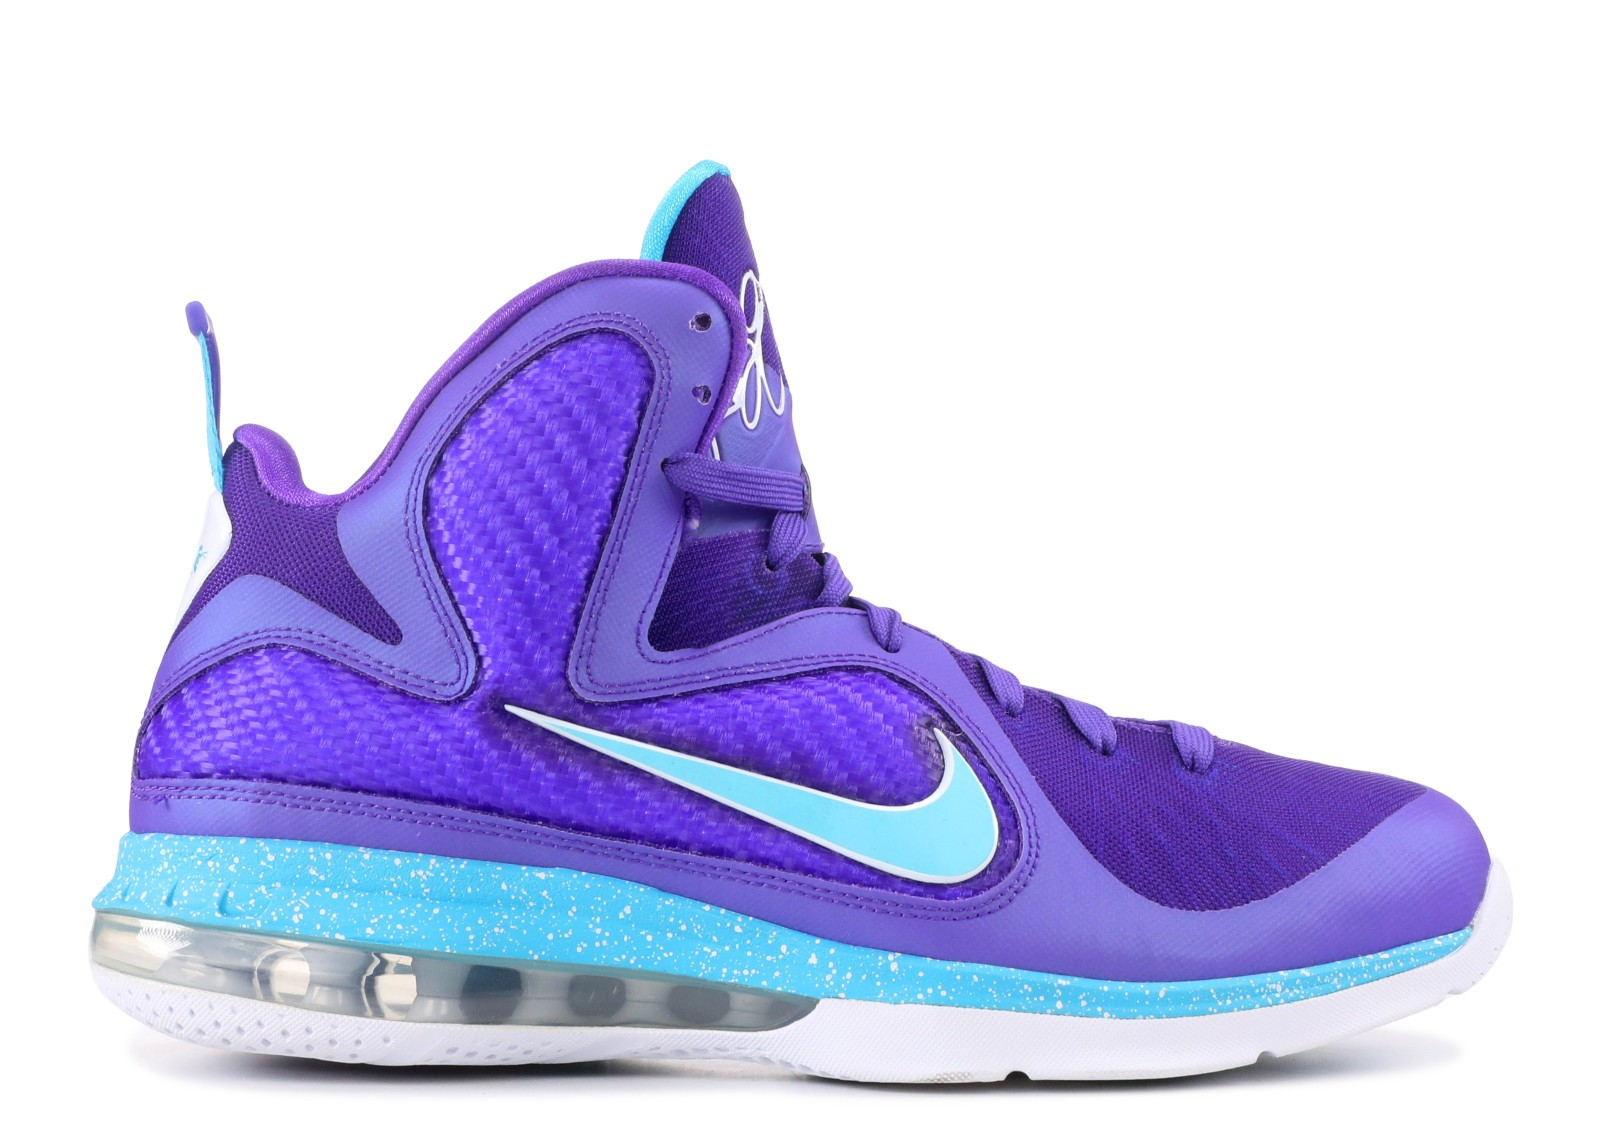 pretty nice 3dbc5 c929d Prev Lebron 9 Summit Lake Hornets Purple Blue Turquoise White Pure 469764- 500